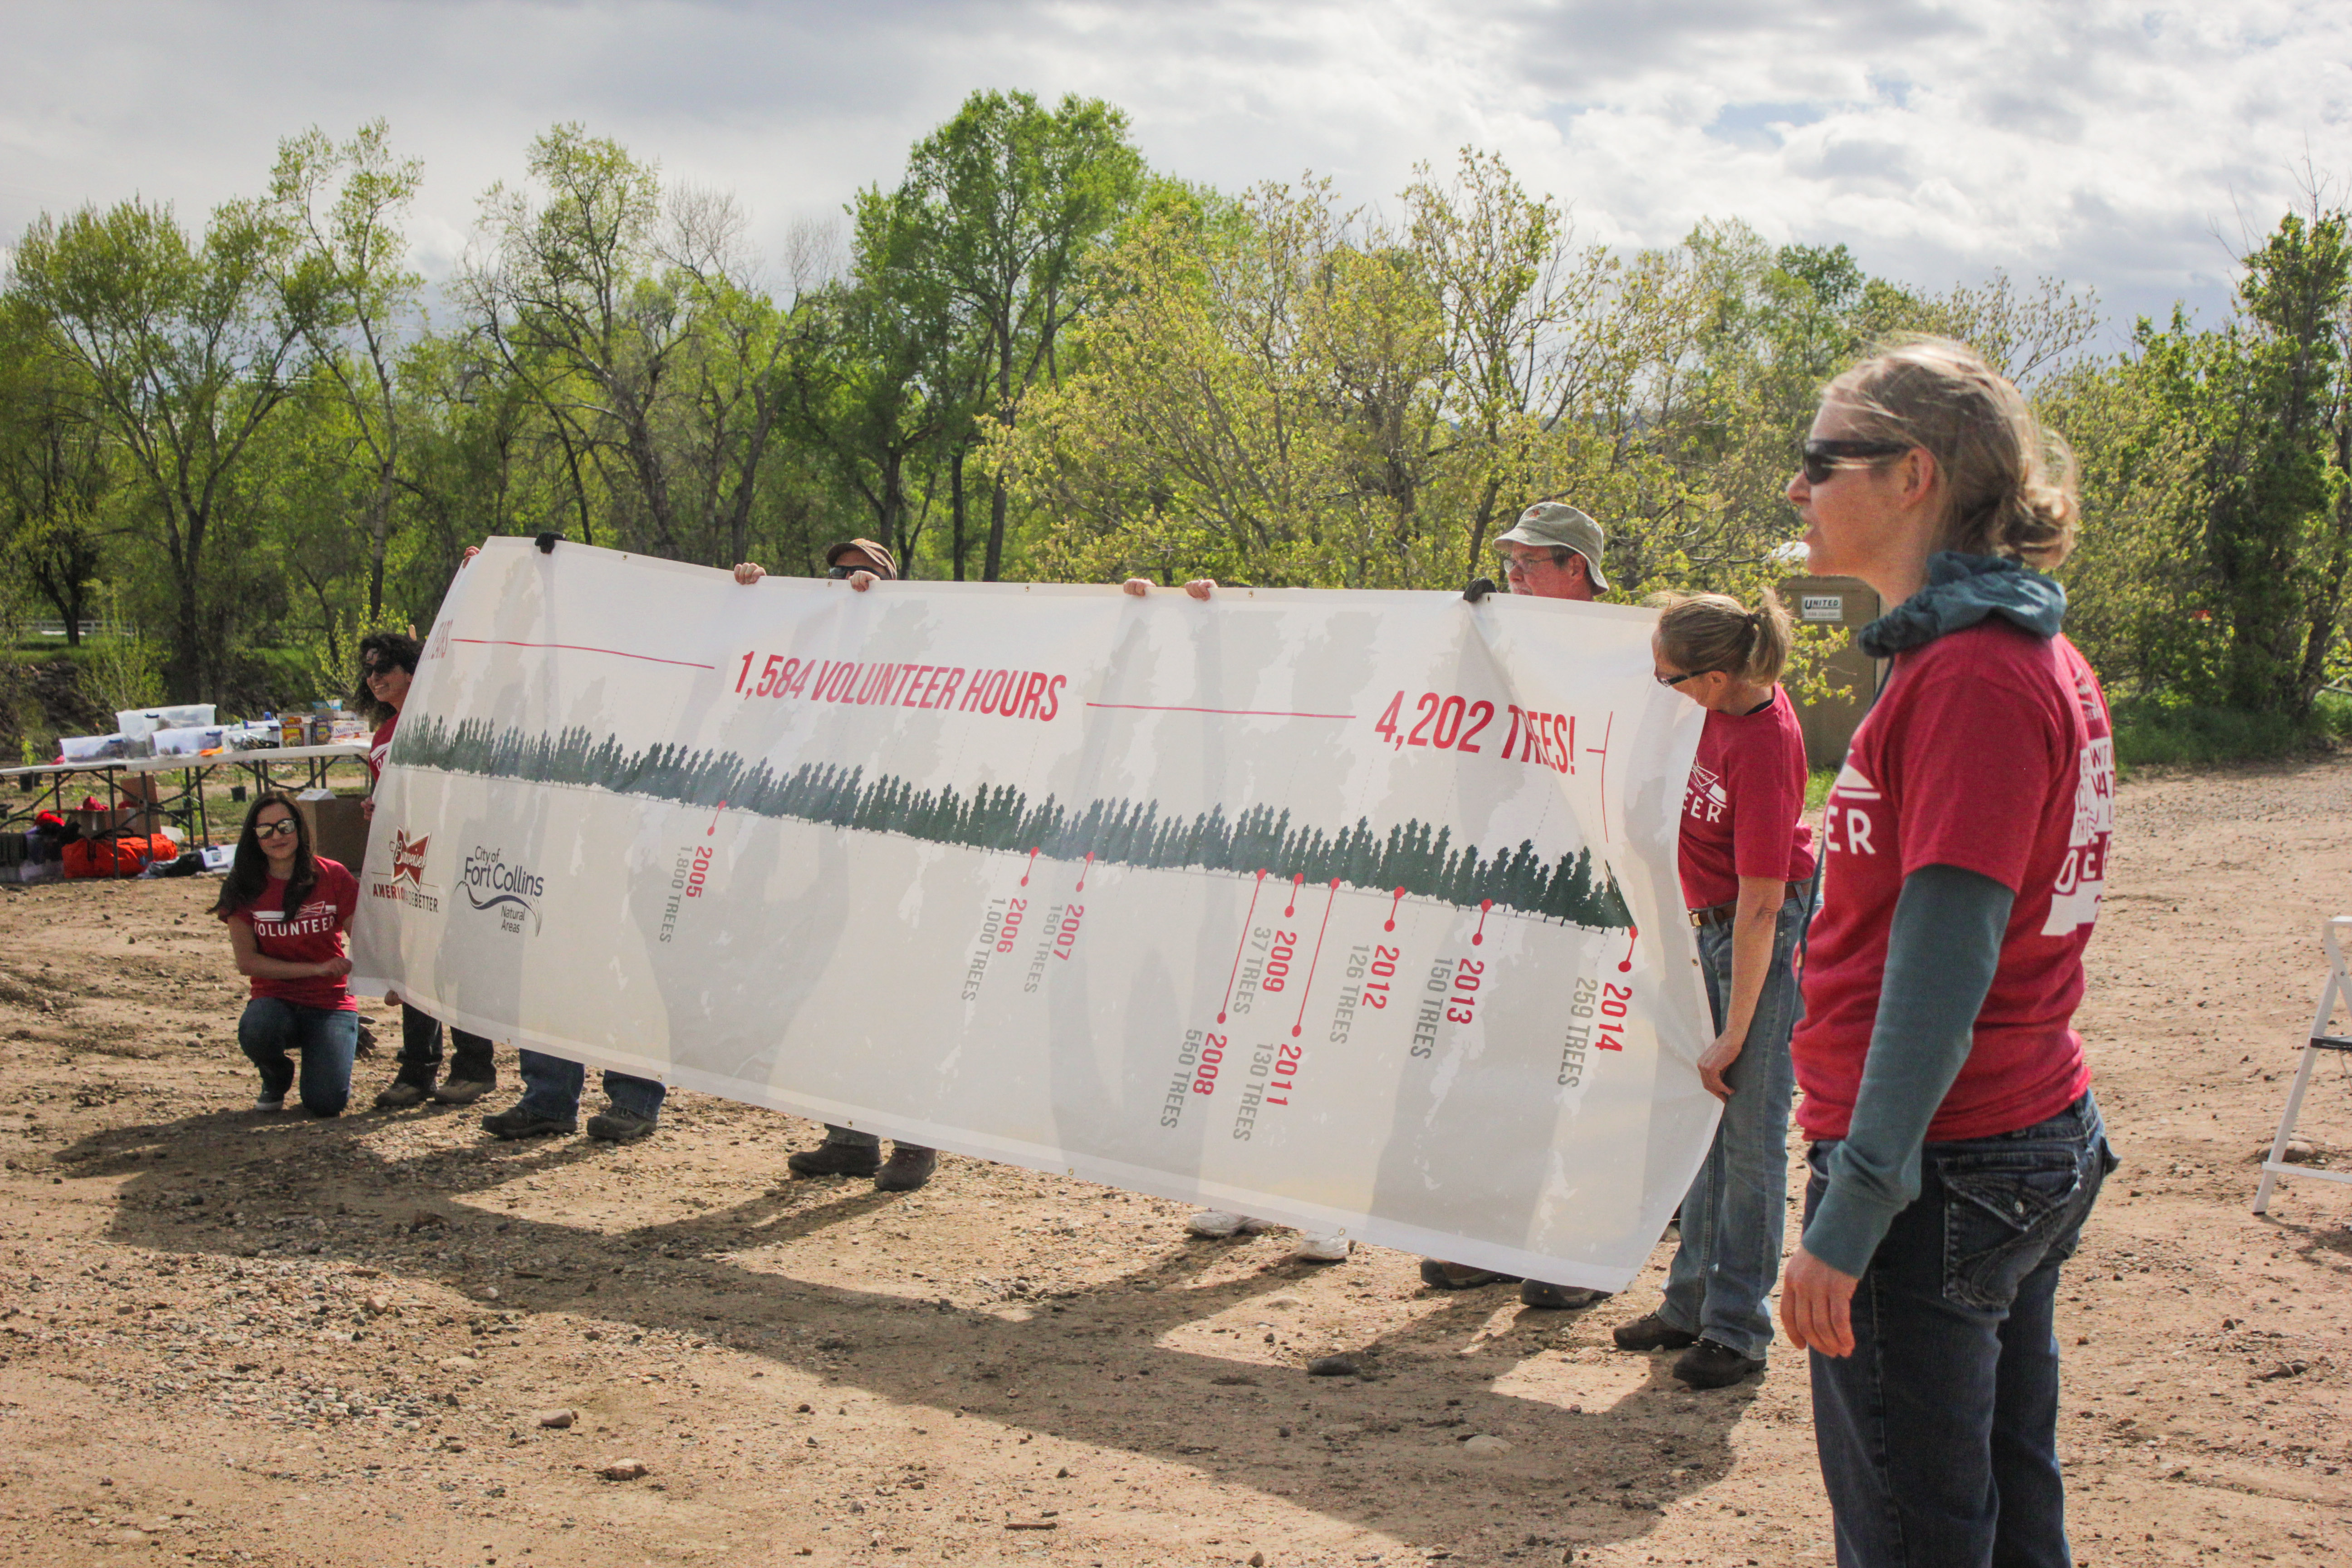 Anheuser-Busch tree-planting volunteer event